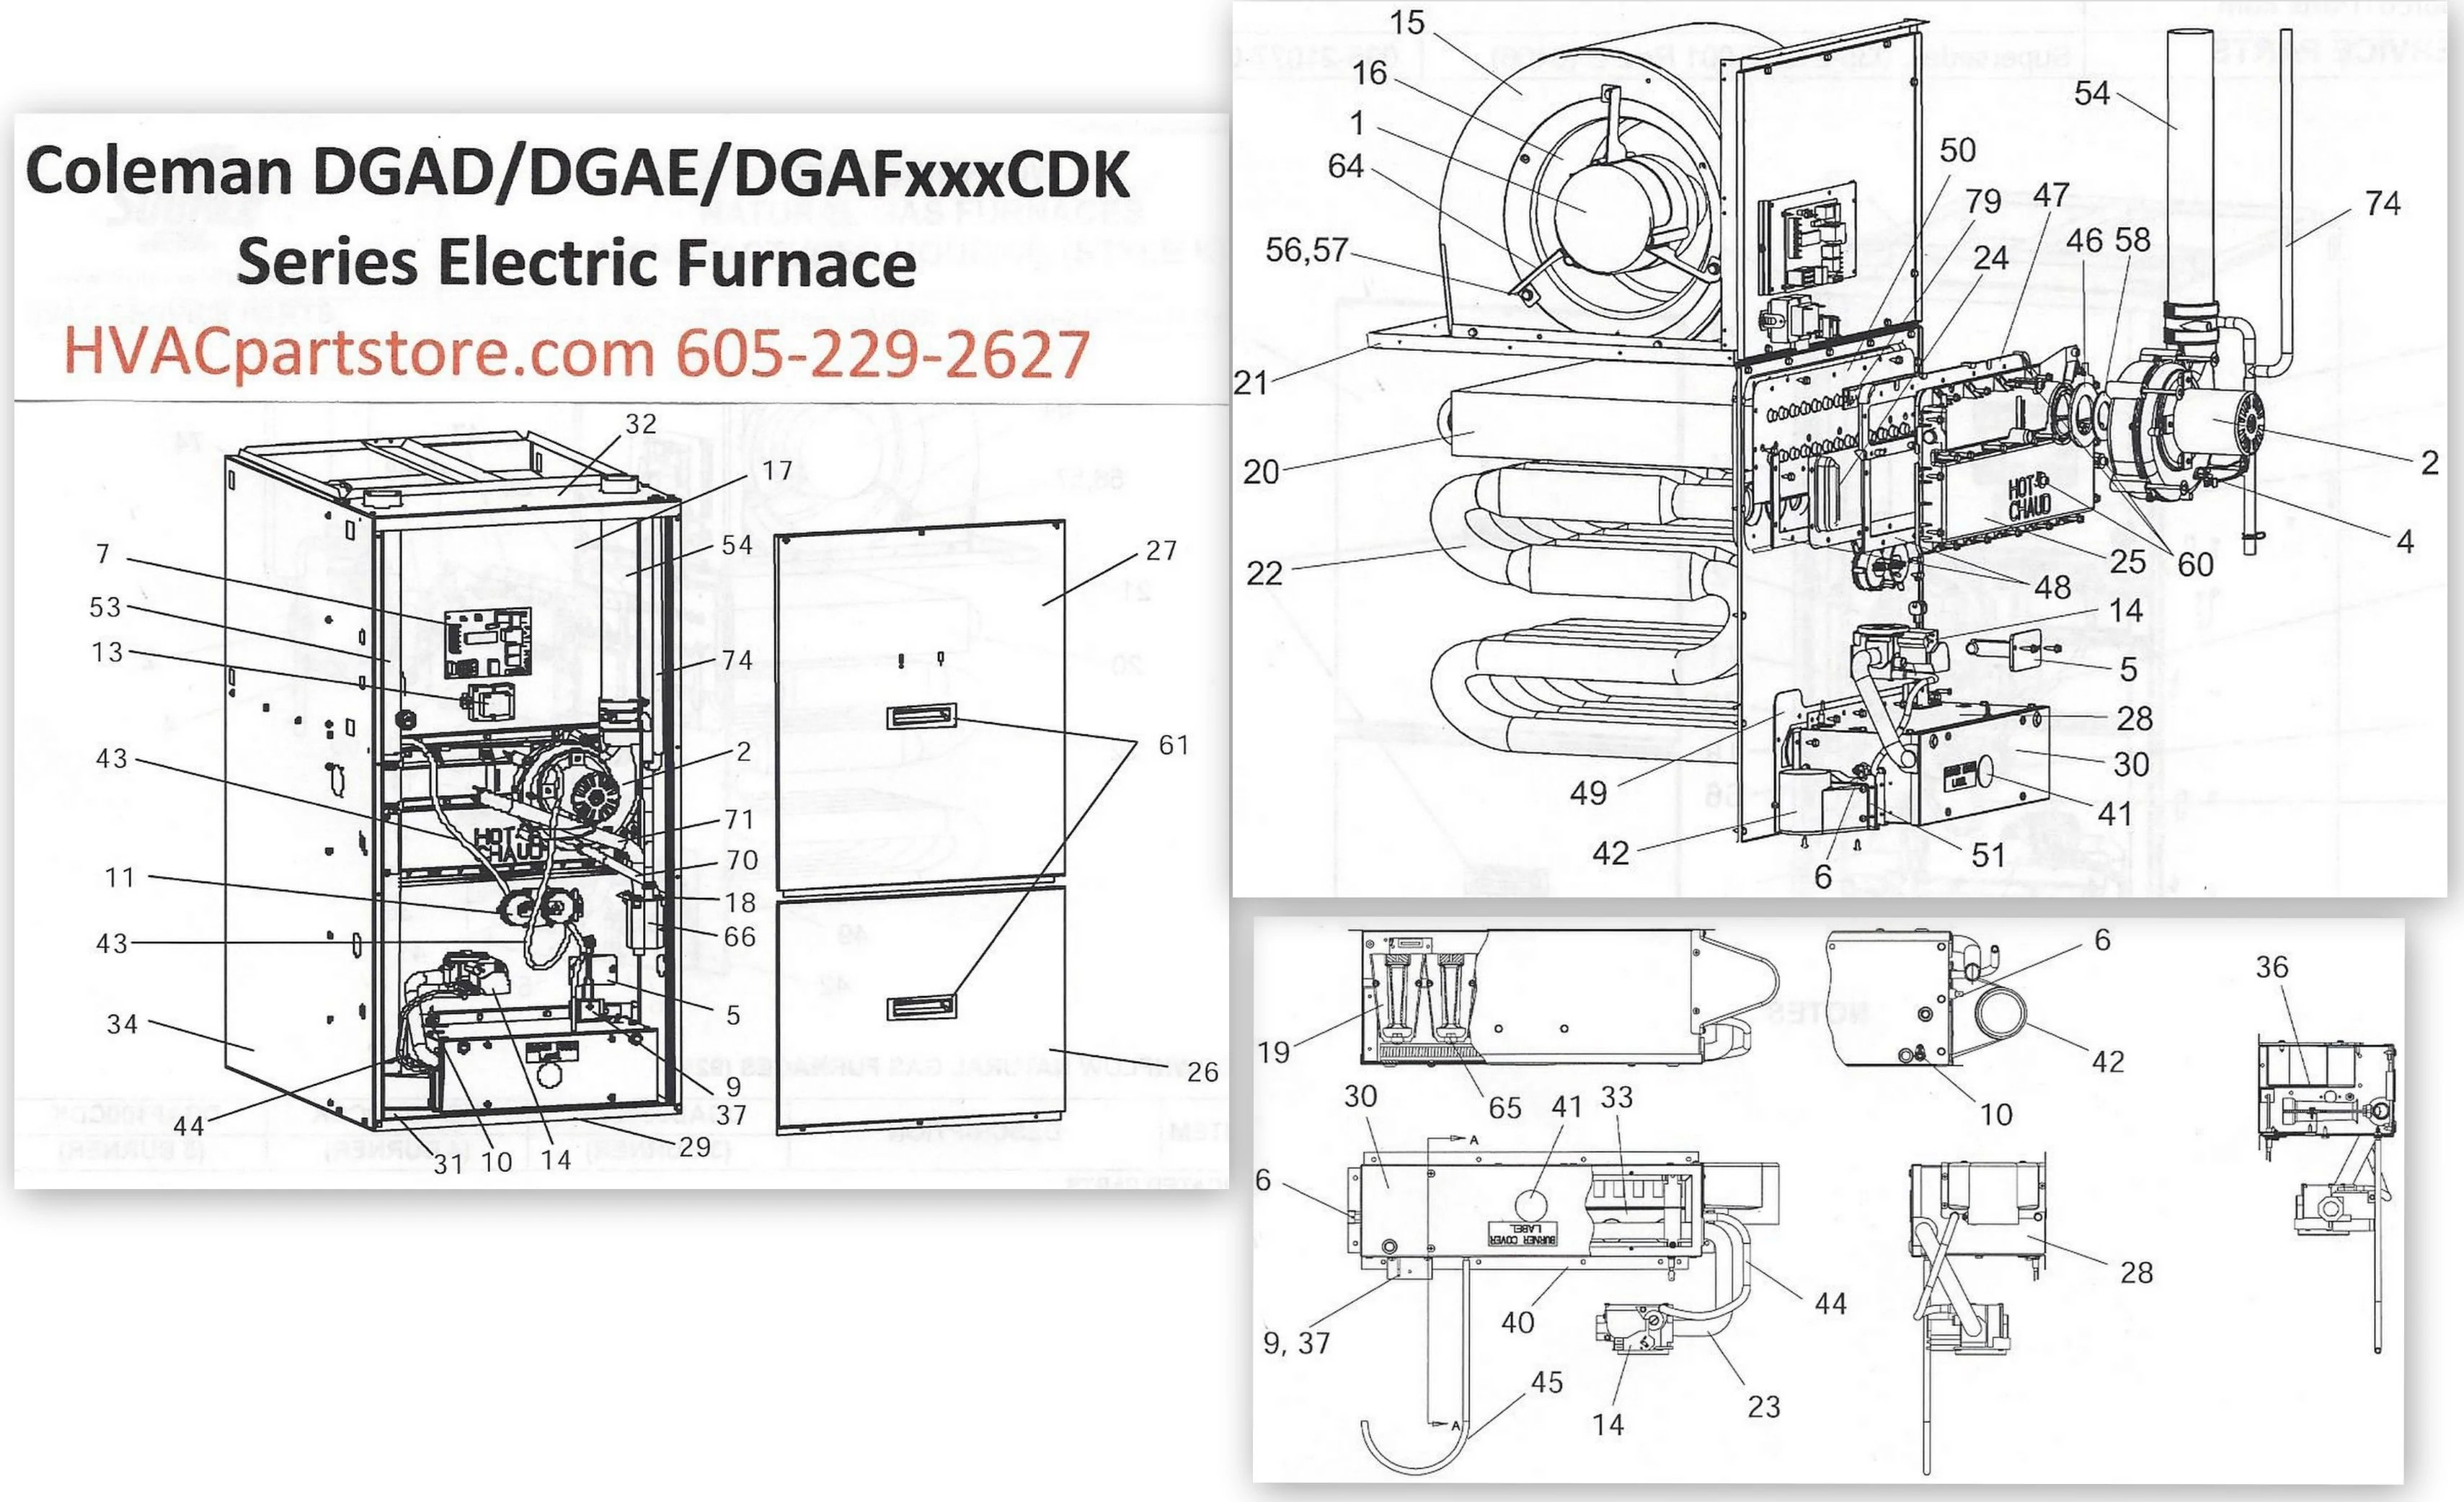 york furnace schematic wiring diagram centre diagram york gas furnace parts york furnace parts diagram york gas [ 3418 x 2084 Pixel ]